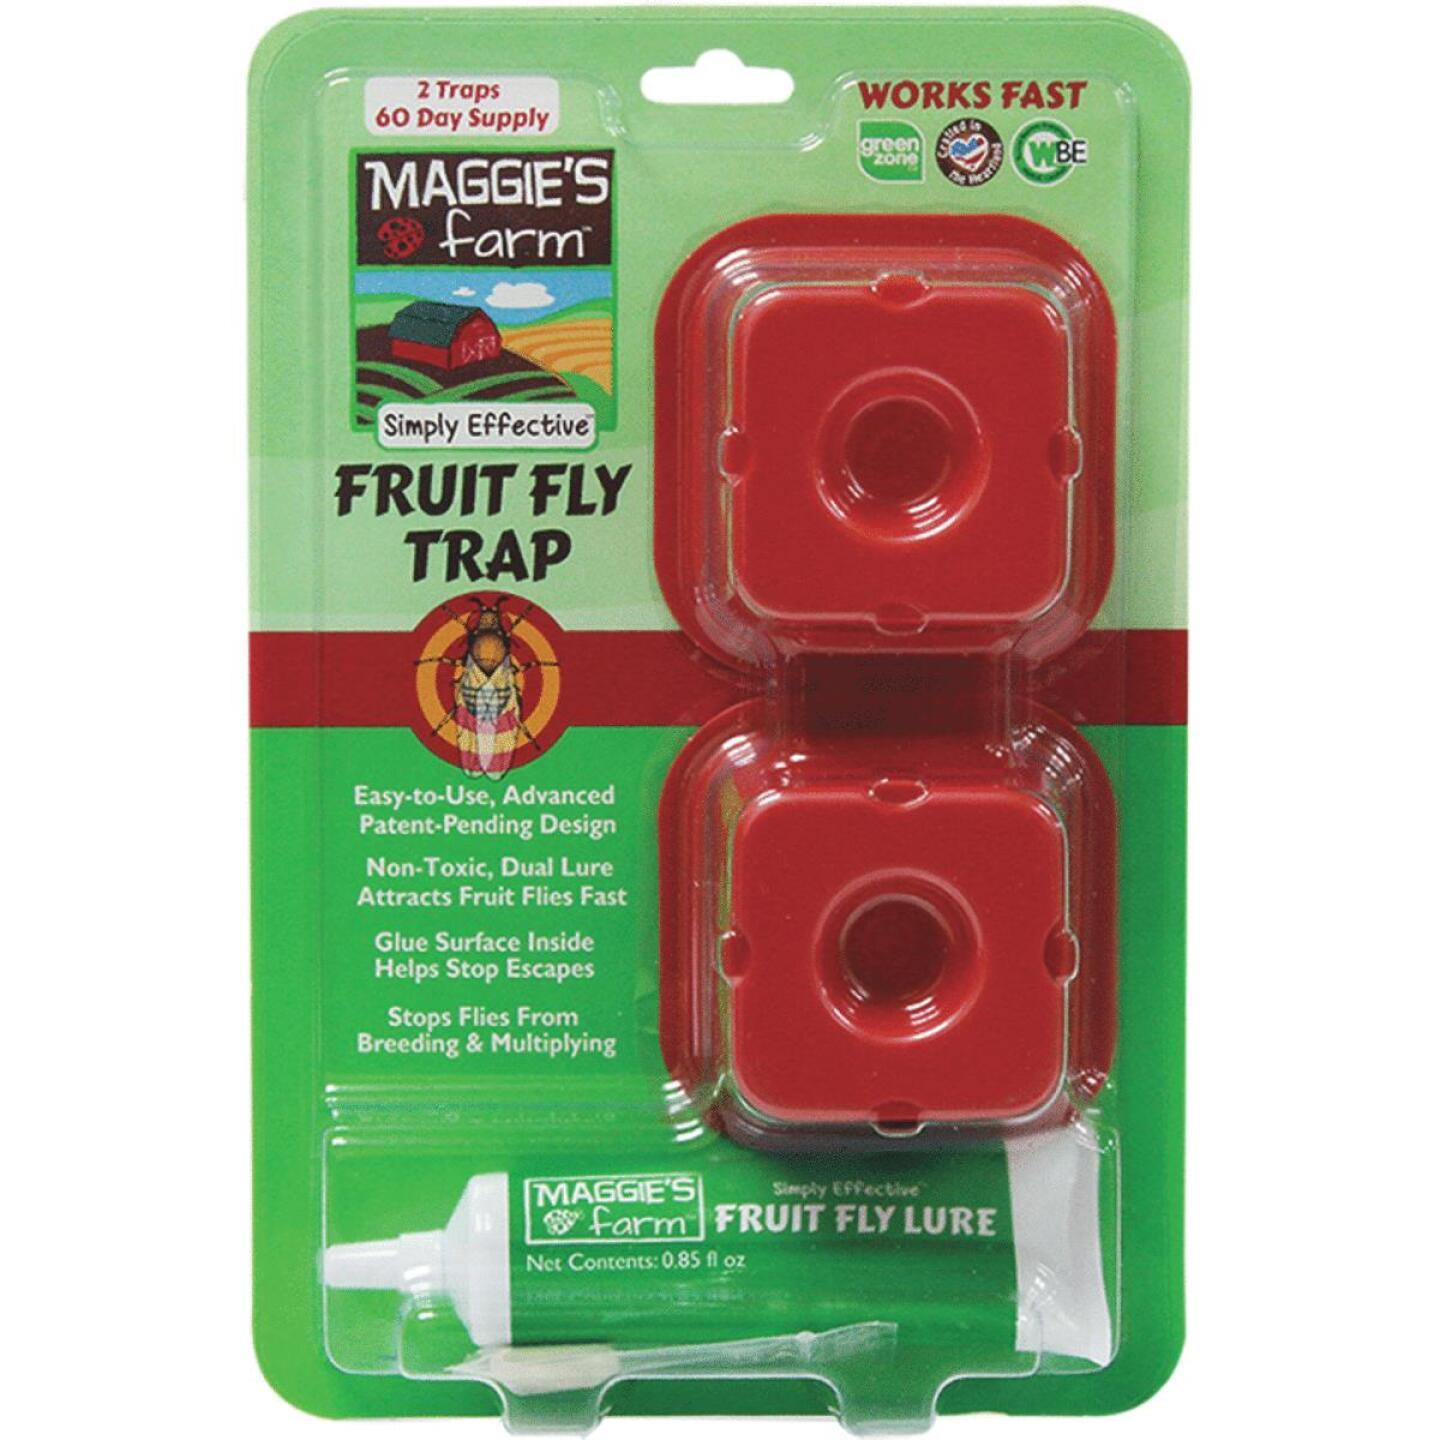 Maggie's Farm Indoor Fruit Fly Trap (2-Pack) Image 1